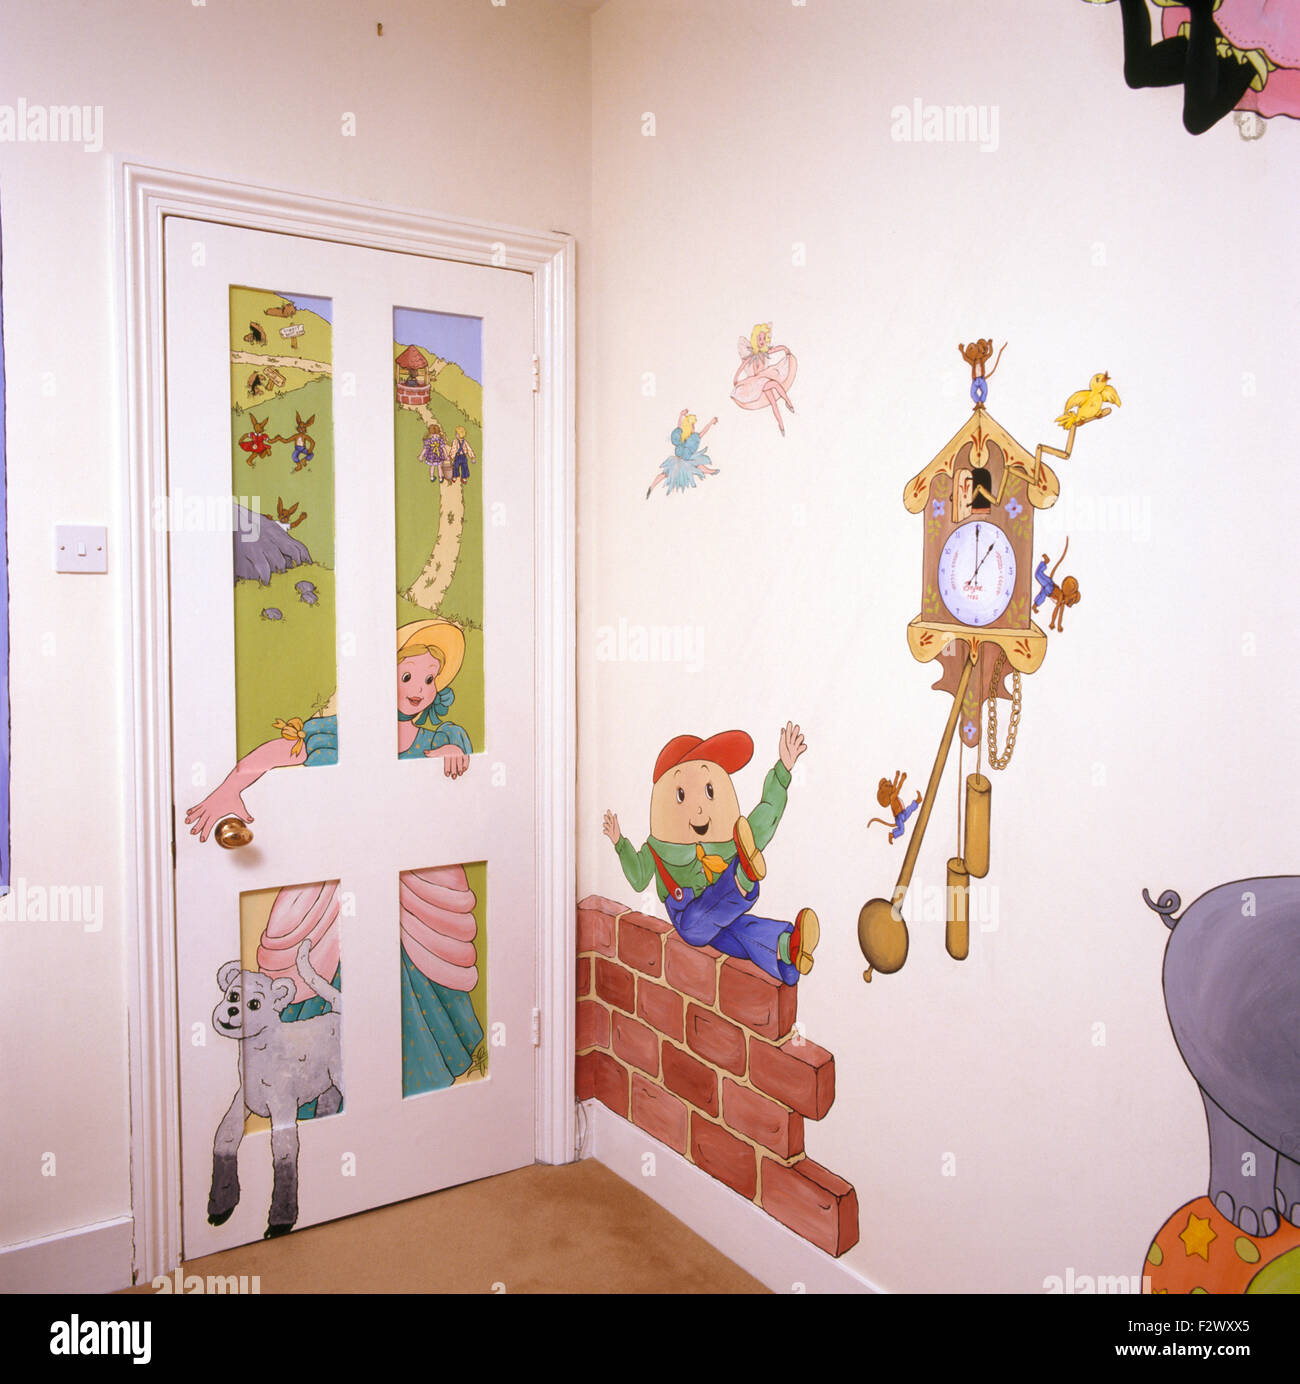 Nursery rhyme characters painted on door and wall in child's eighties bedroom - Stock Image